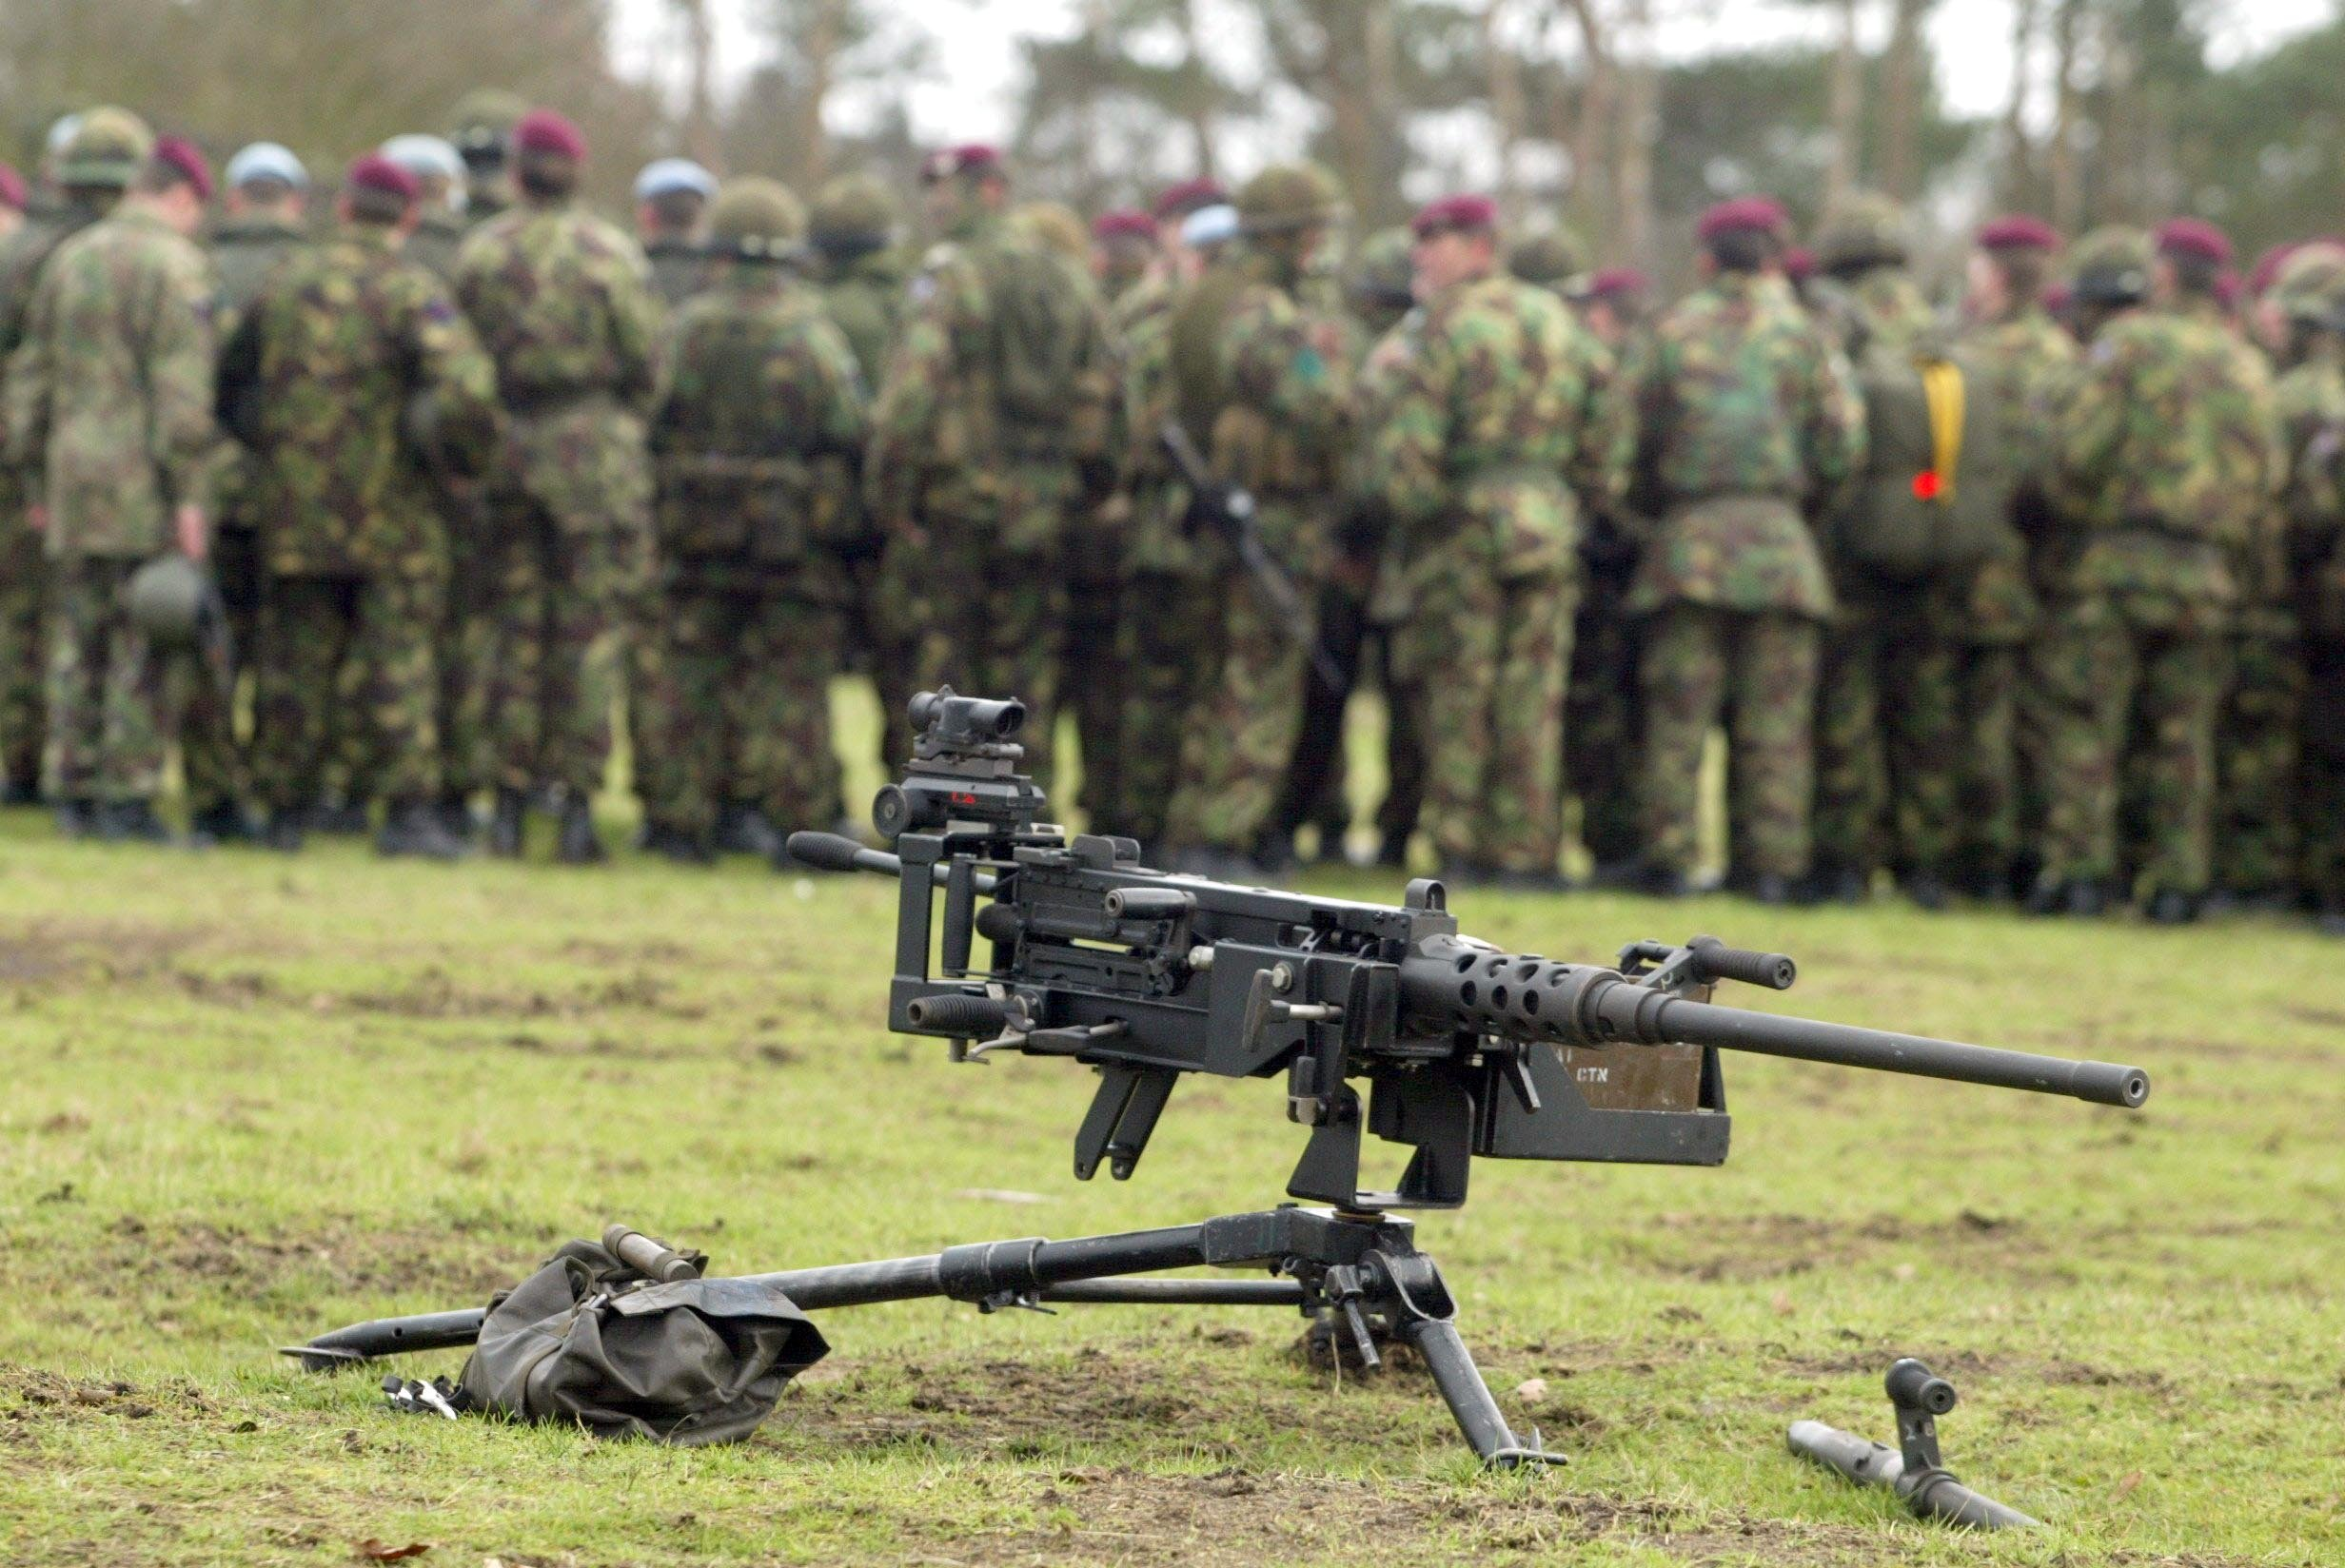 Mandatory Credit: Photo by Tony Kyriacou/REX/Shutterstock (401786v) .50 CALIBRE BROWNING HEAVY MACHINE GUN 16 AIR ASSAULT BRIGADE MEDIA FACILITY, LONDON, BRITAIN - 23 JAN 2003